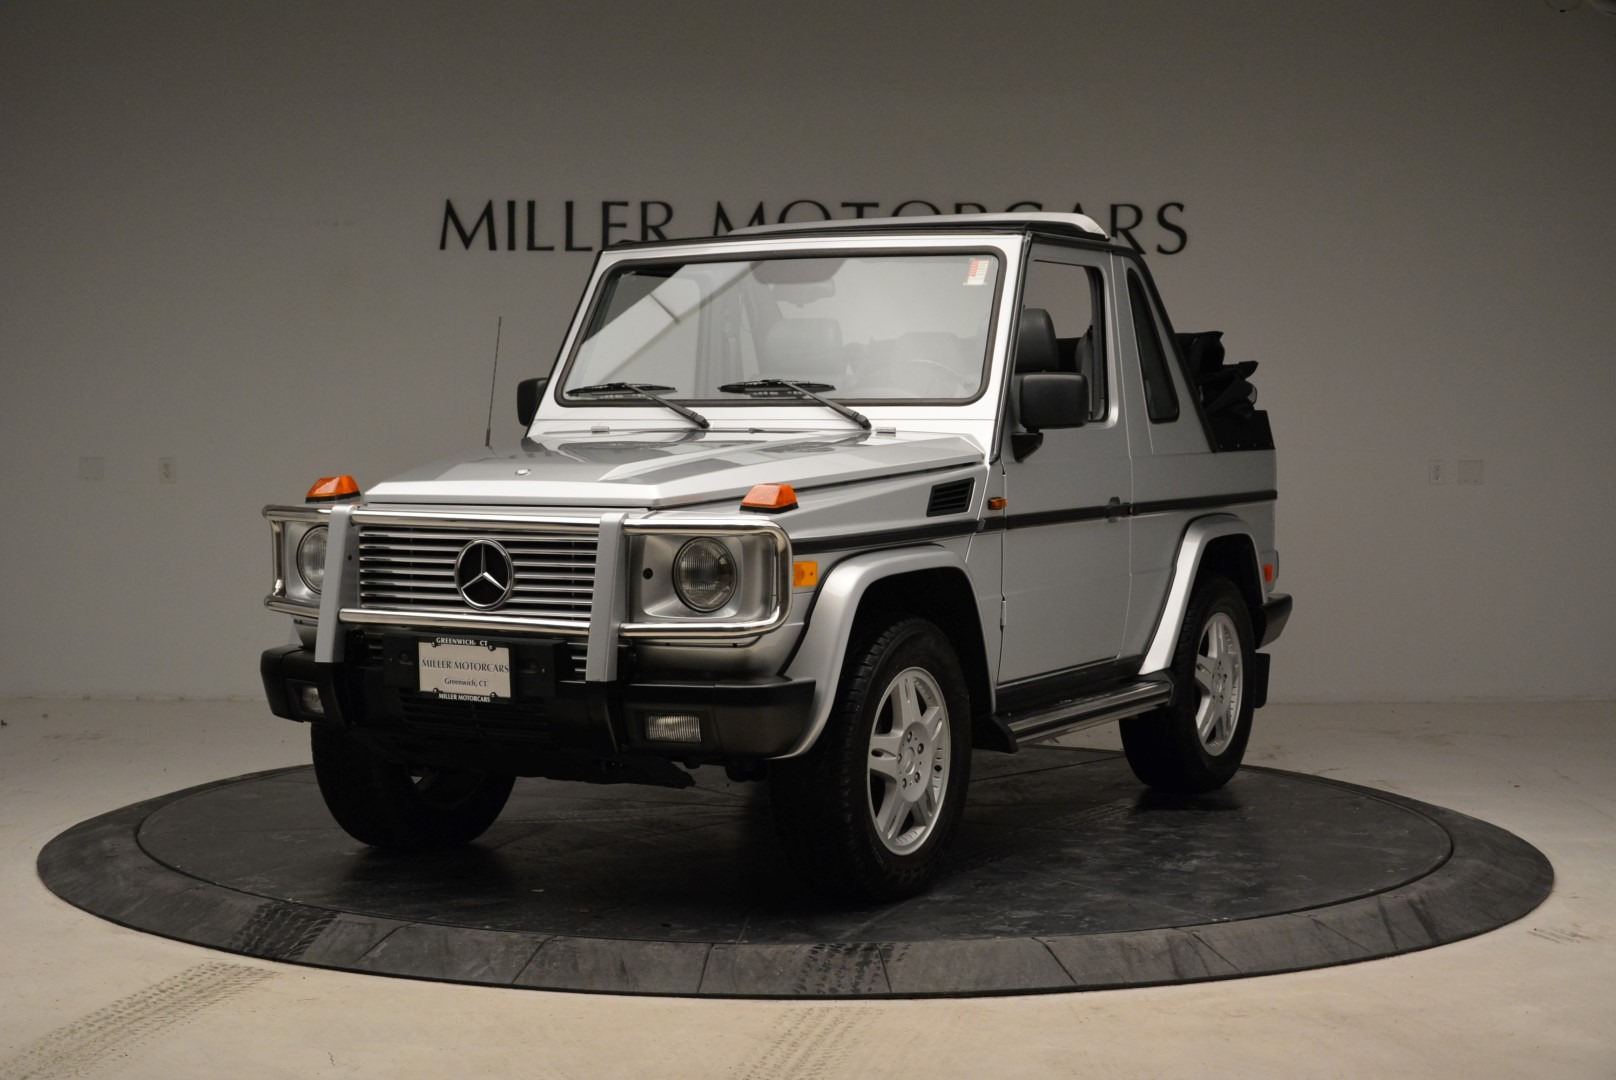 Used 1999 Mercedes Benz G500 Cabriolet for sale Sold at McLaren Greenwich in Greenwich CT 06830 1